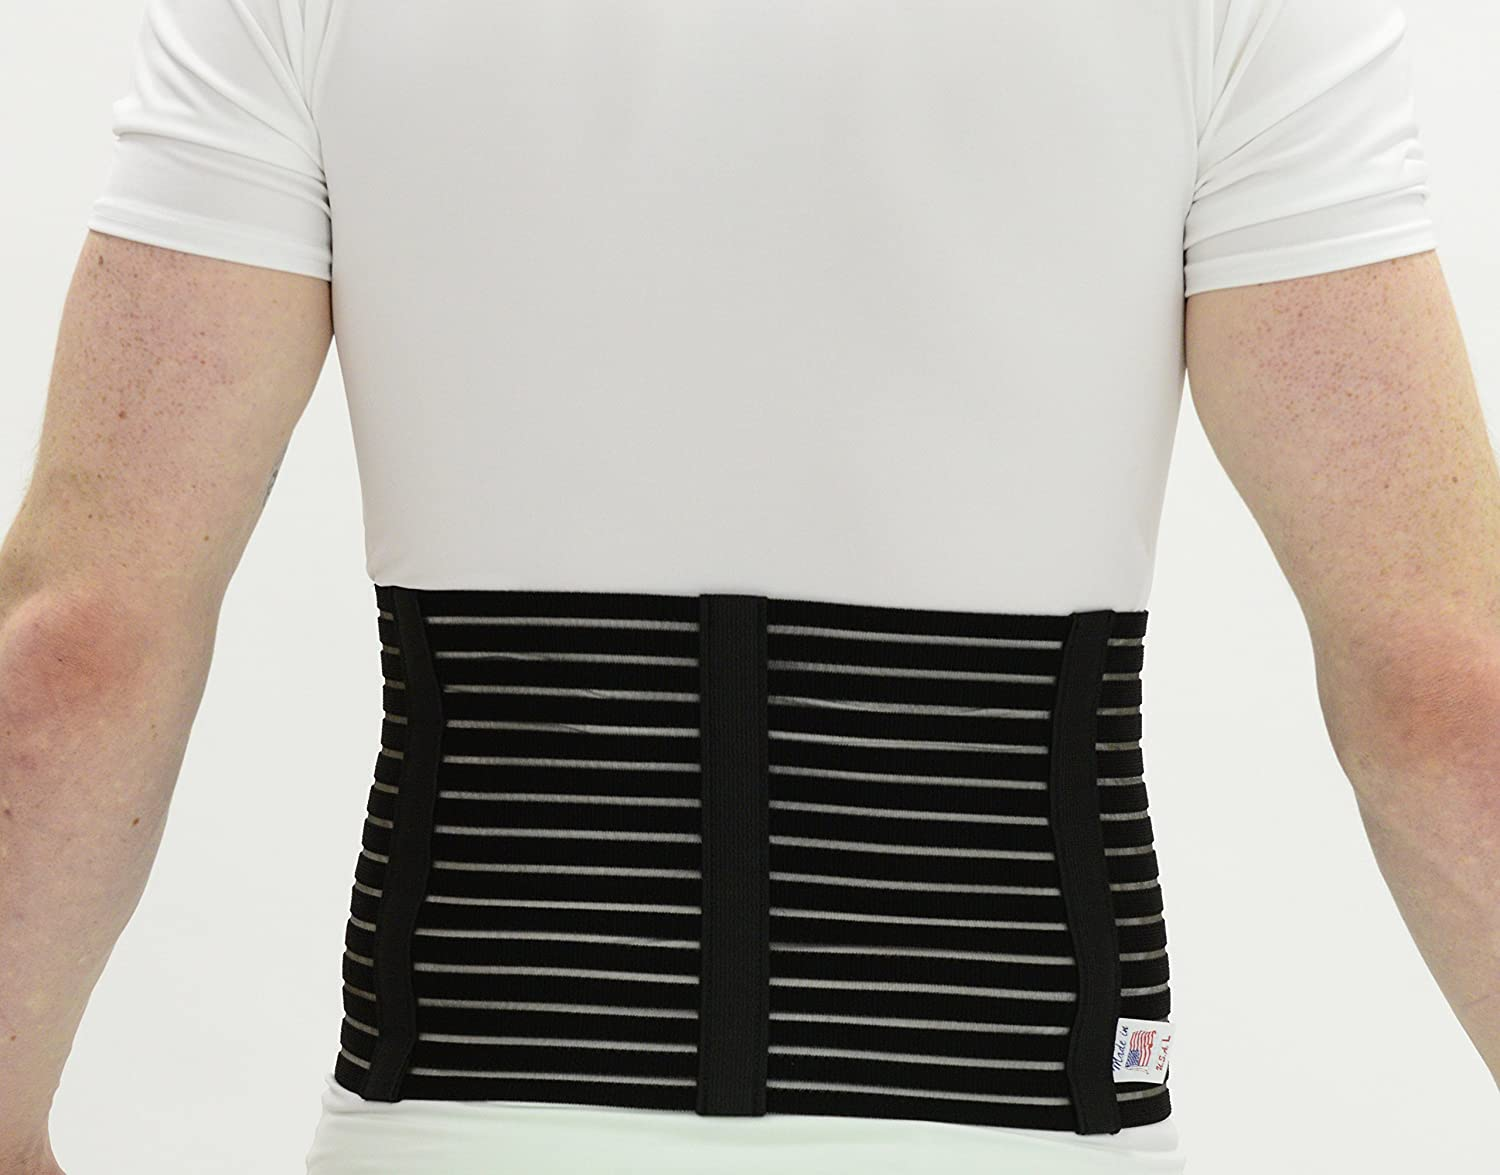 Amazon.com: ITA-MED Mens Breathable Abdominal/Back Support Binder AB-208: White Small: Health & Personal Care